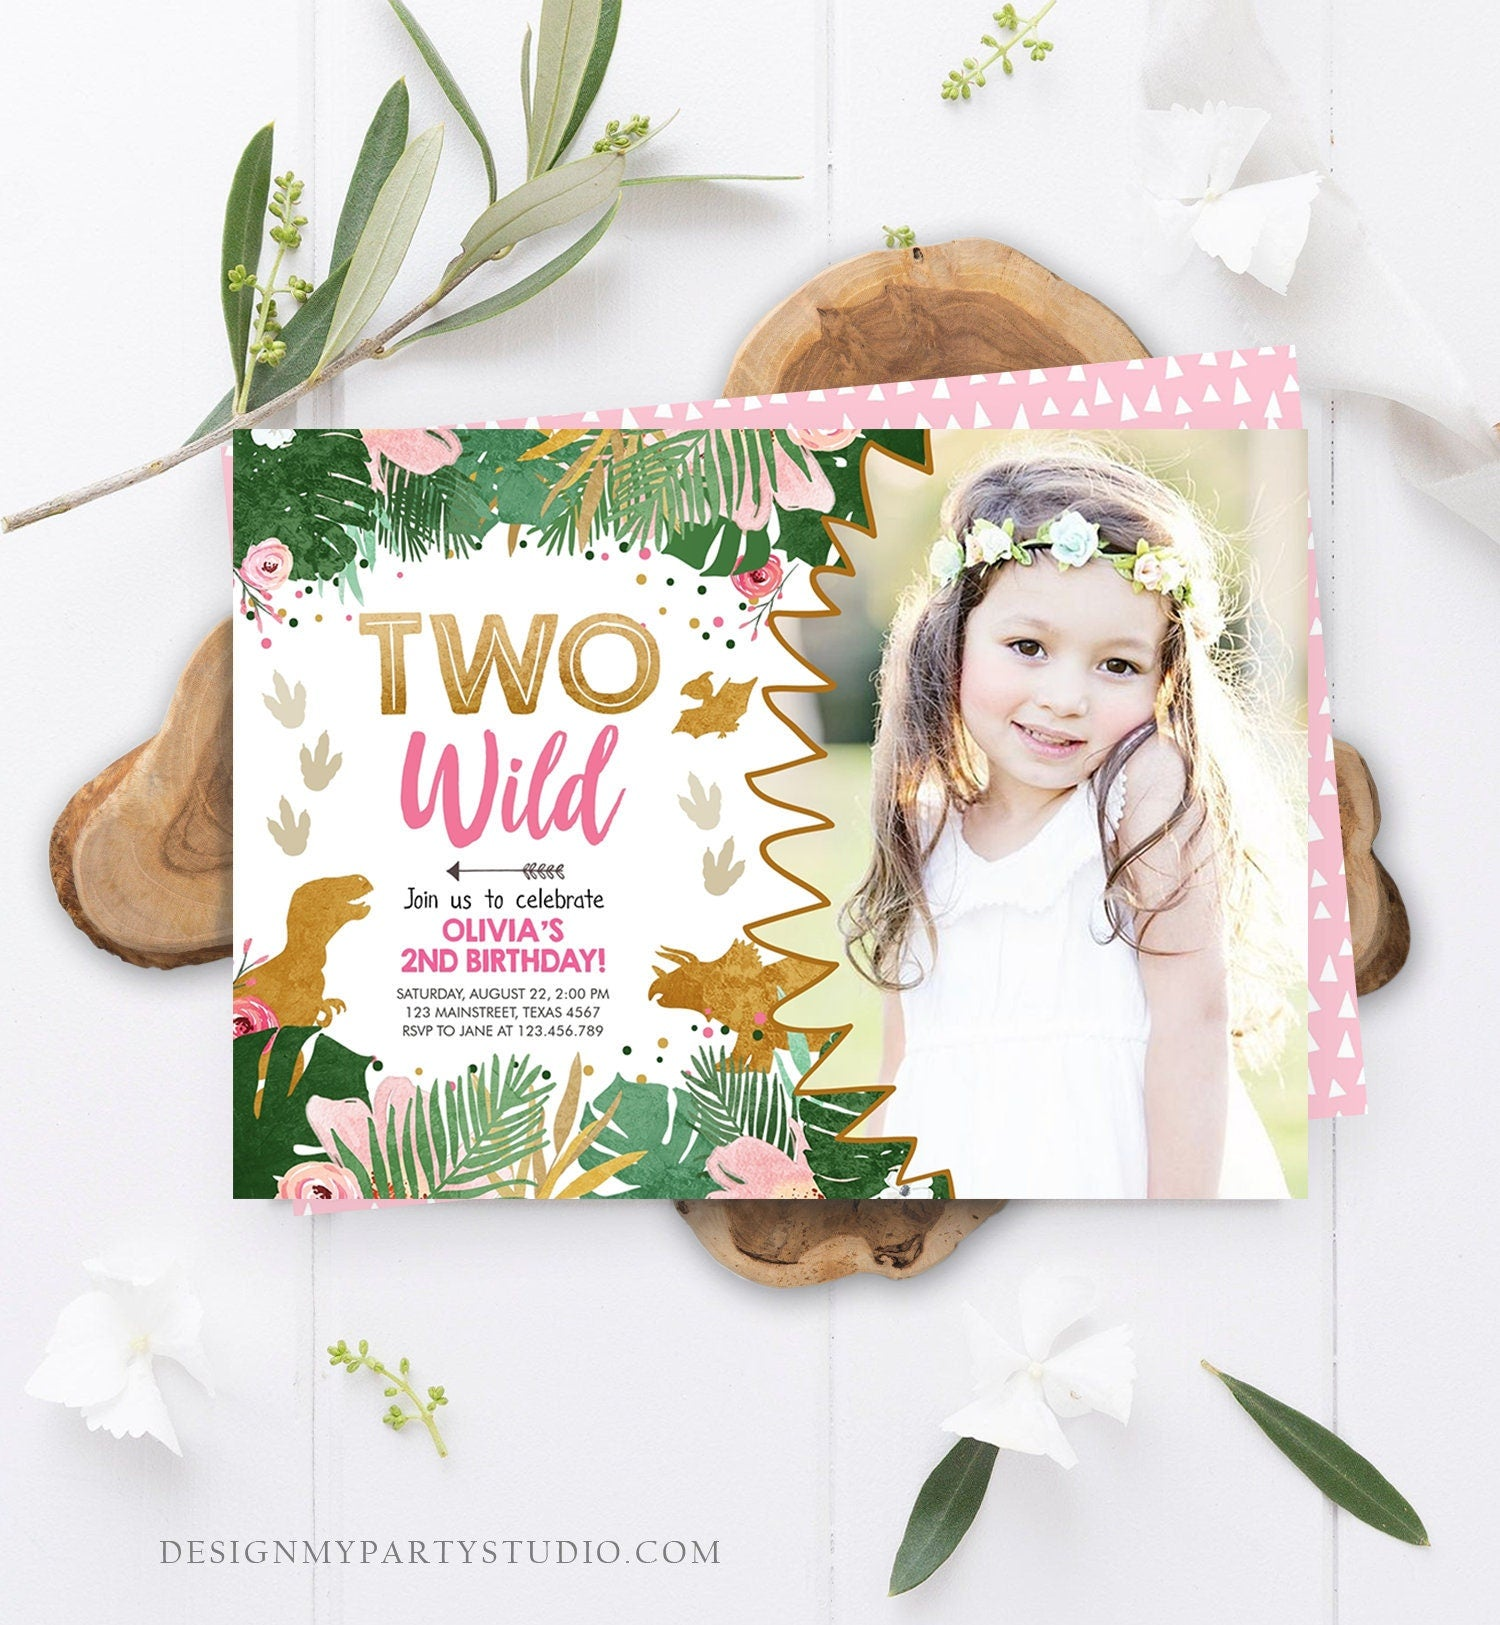 Editable Two Wild Birthday Invitation Dinosaur Dino Party Girl 2nd Second Birthday Pink Gold In Two the Wild Corjl Template Printable 0146